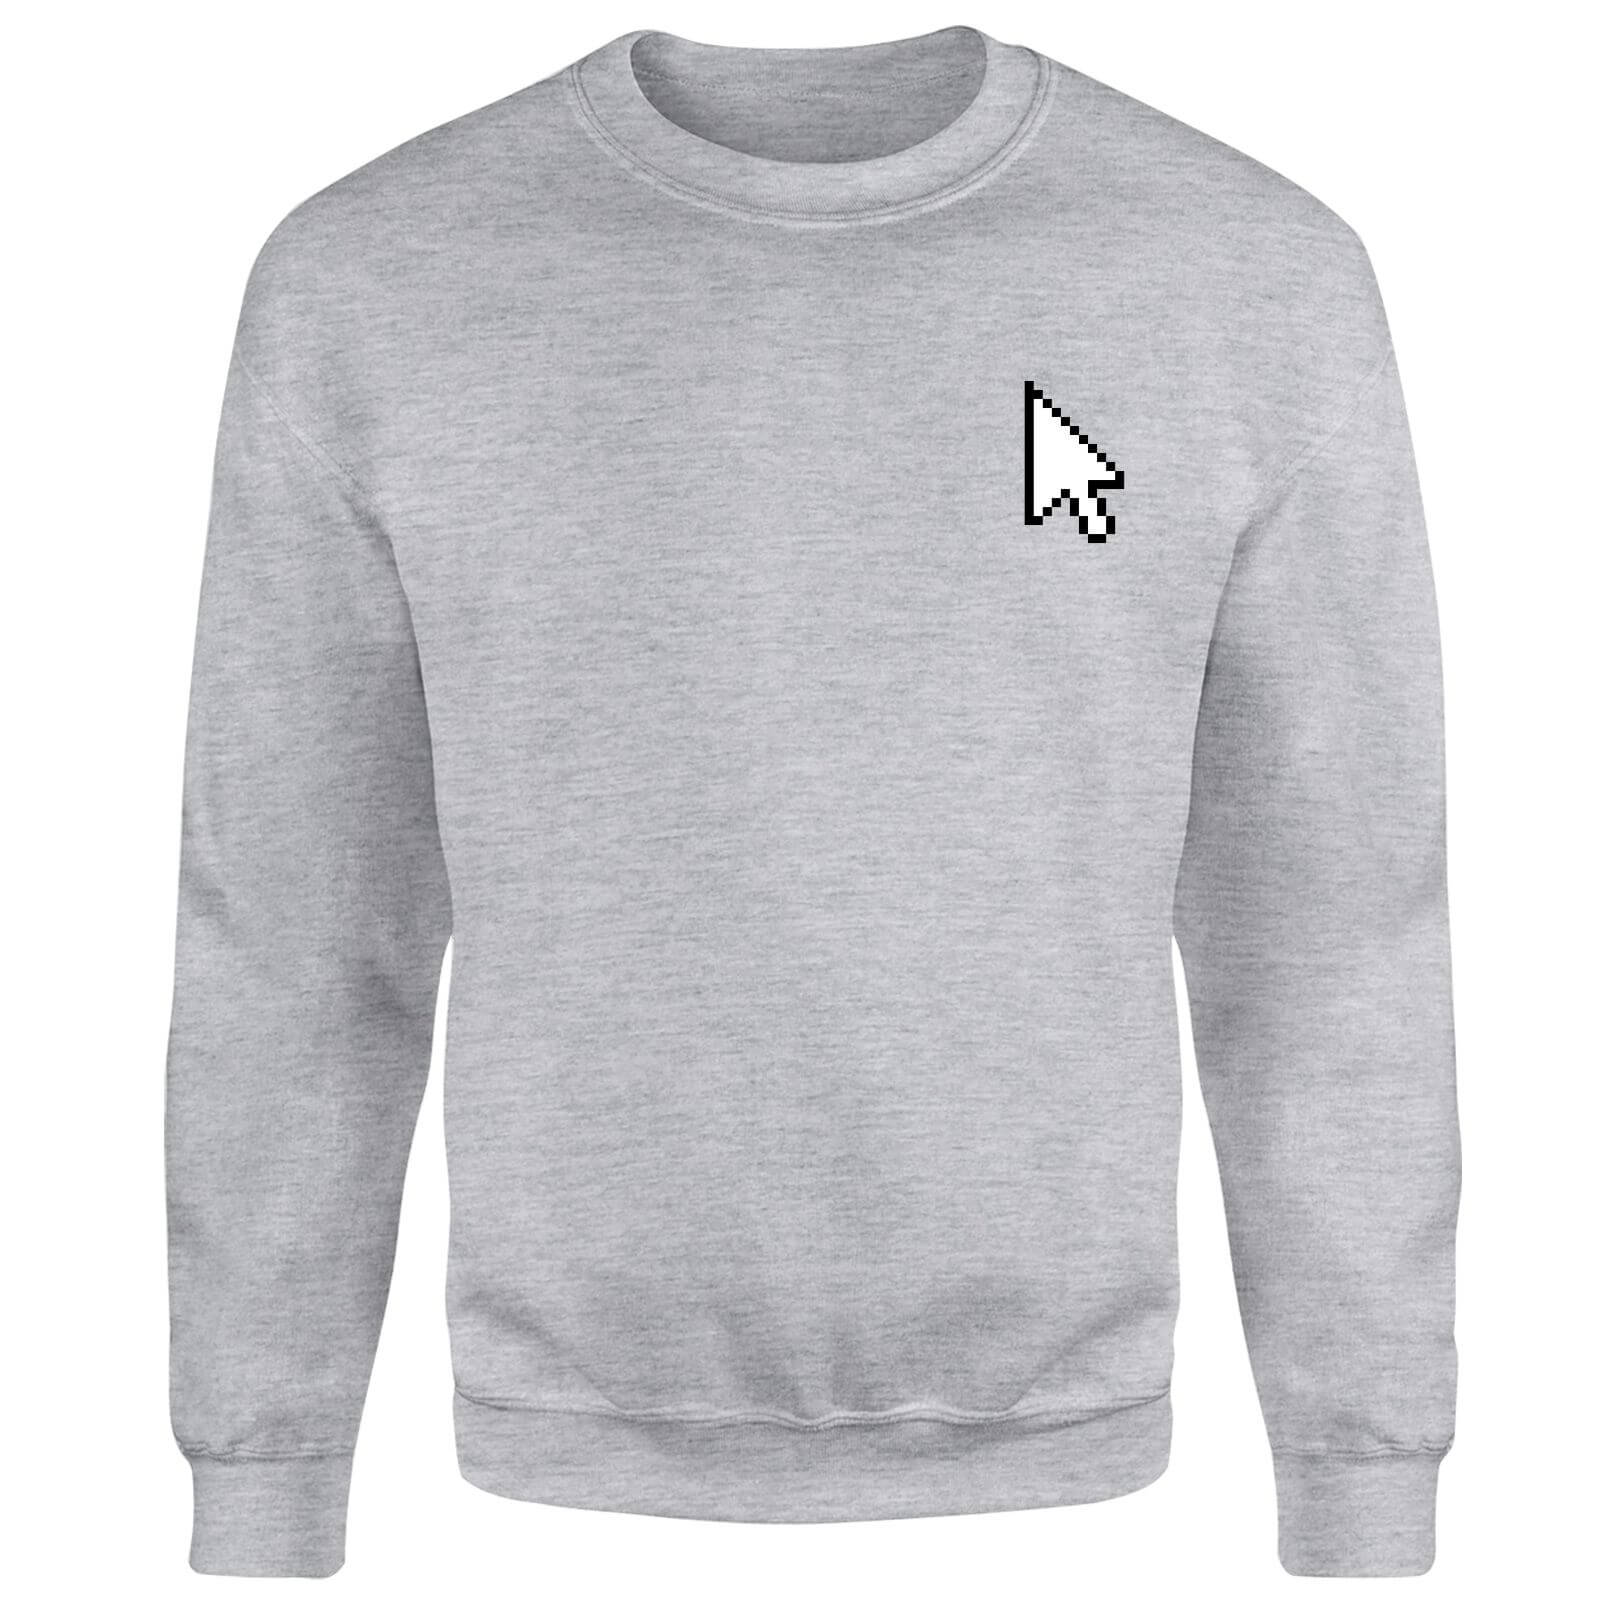 Pointer Gaming Sweatshirt - Grey